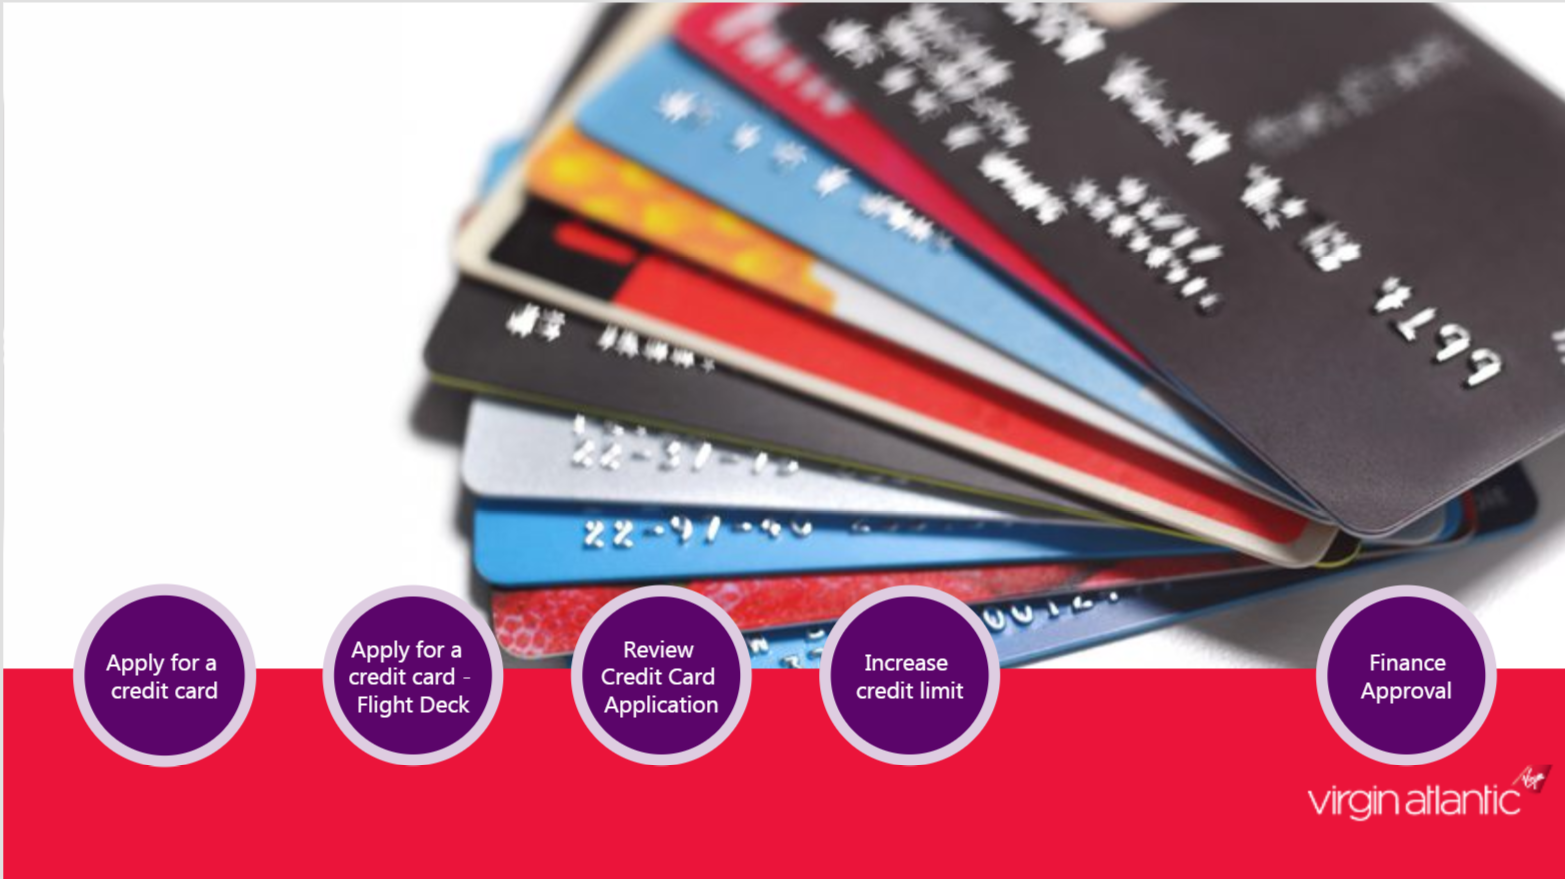 Virgin Atlantic Credit Card Application screenshot